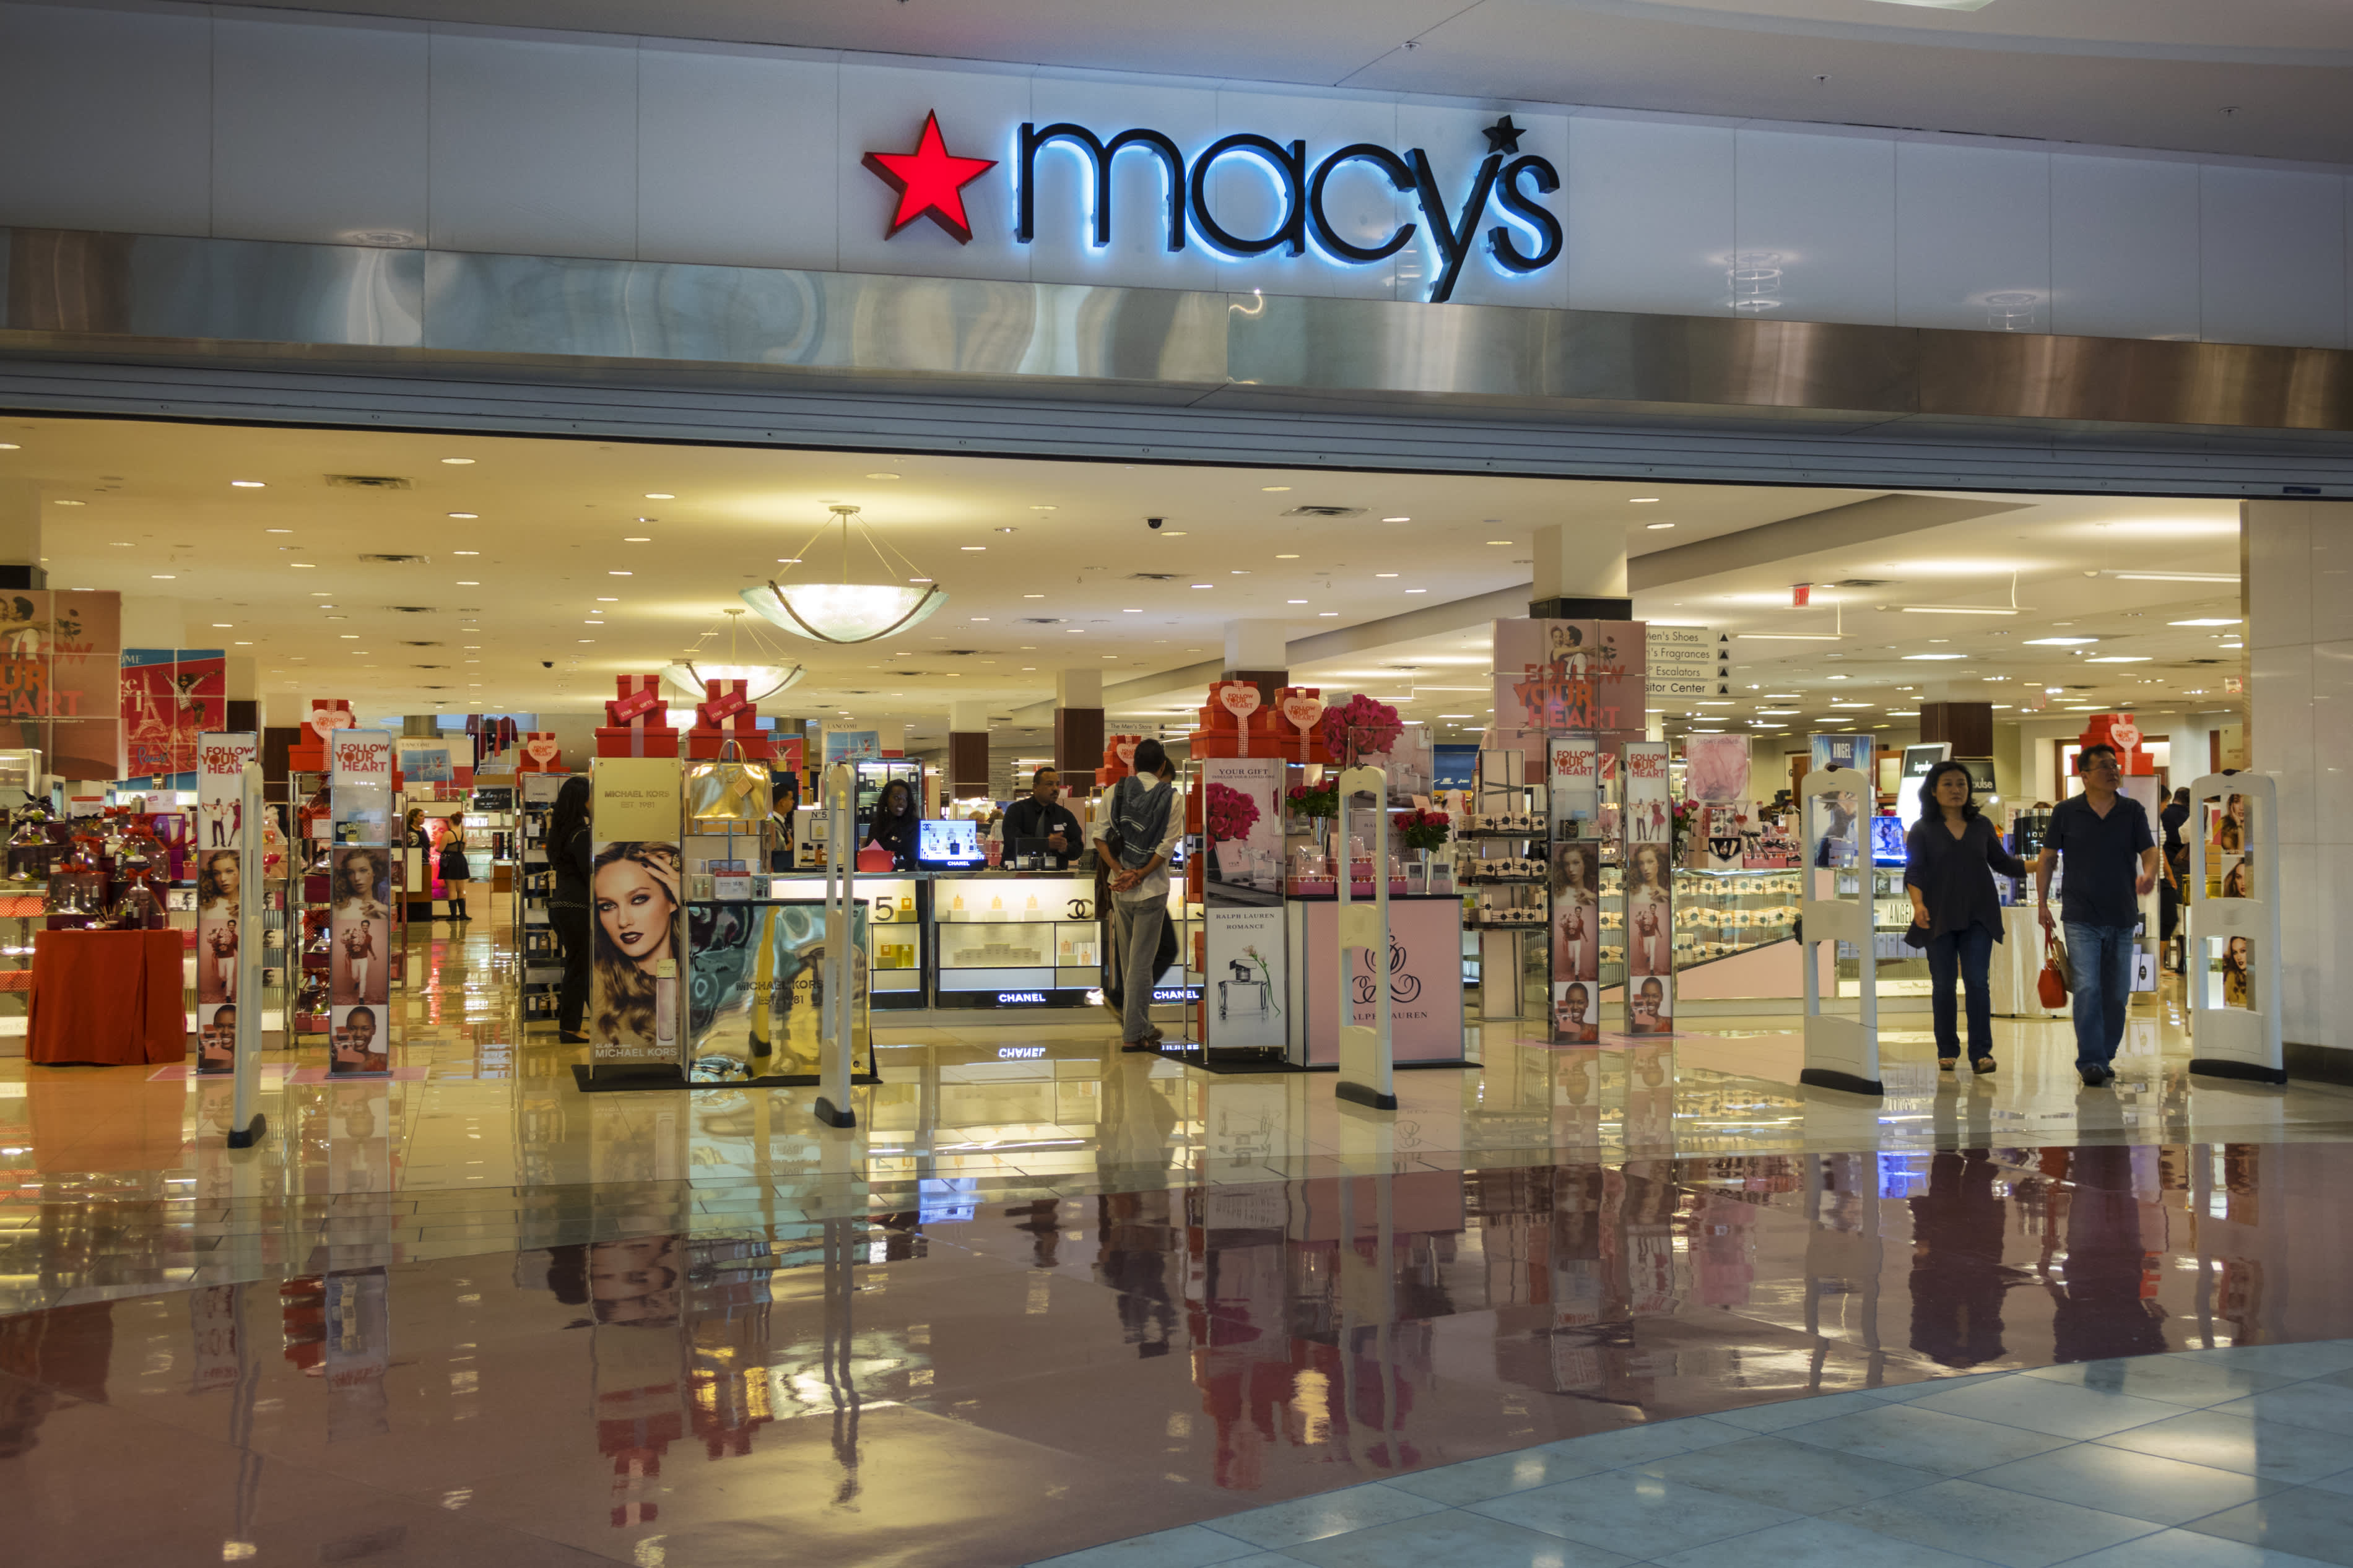 Macy's weighs raising as much as $5 billion in debt to weather coronavirus crisis